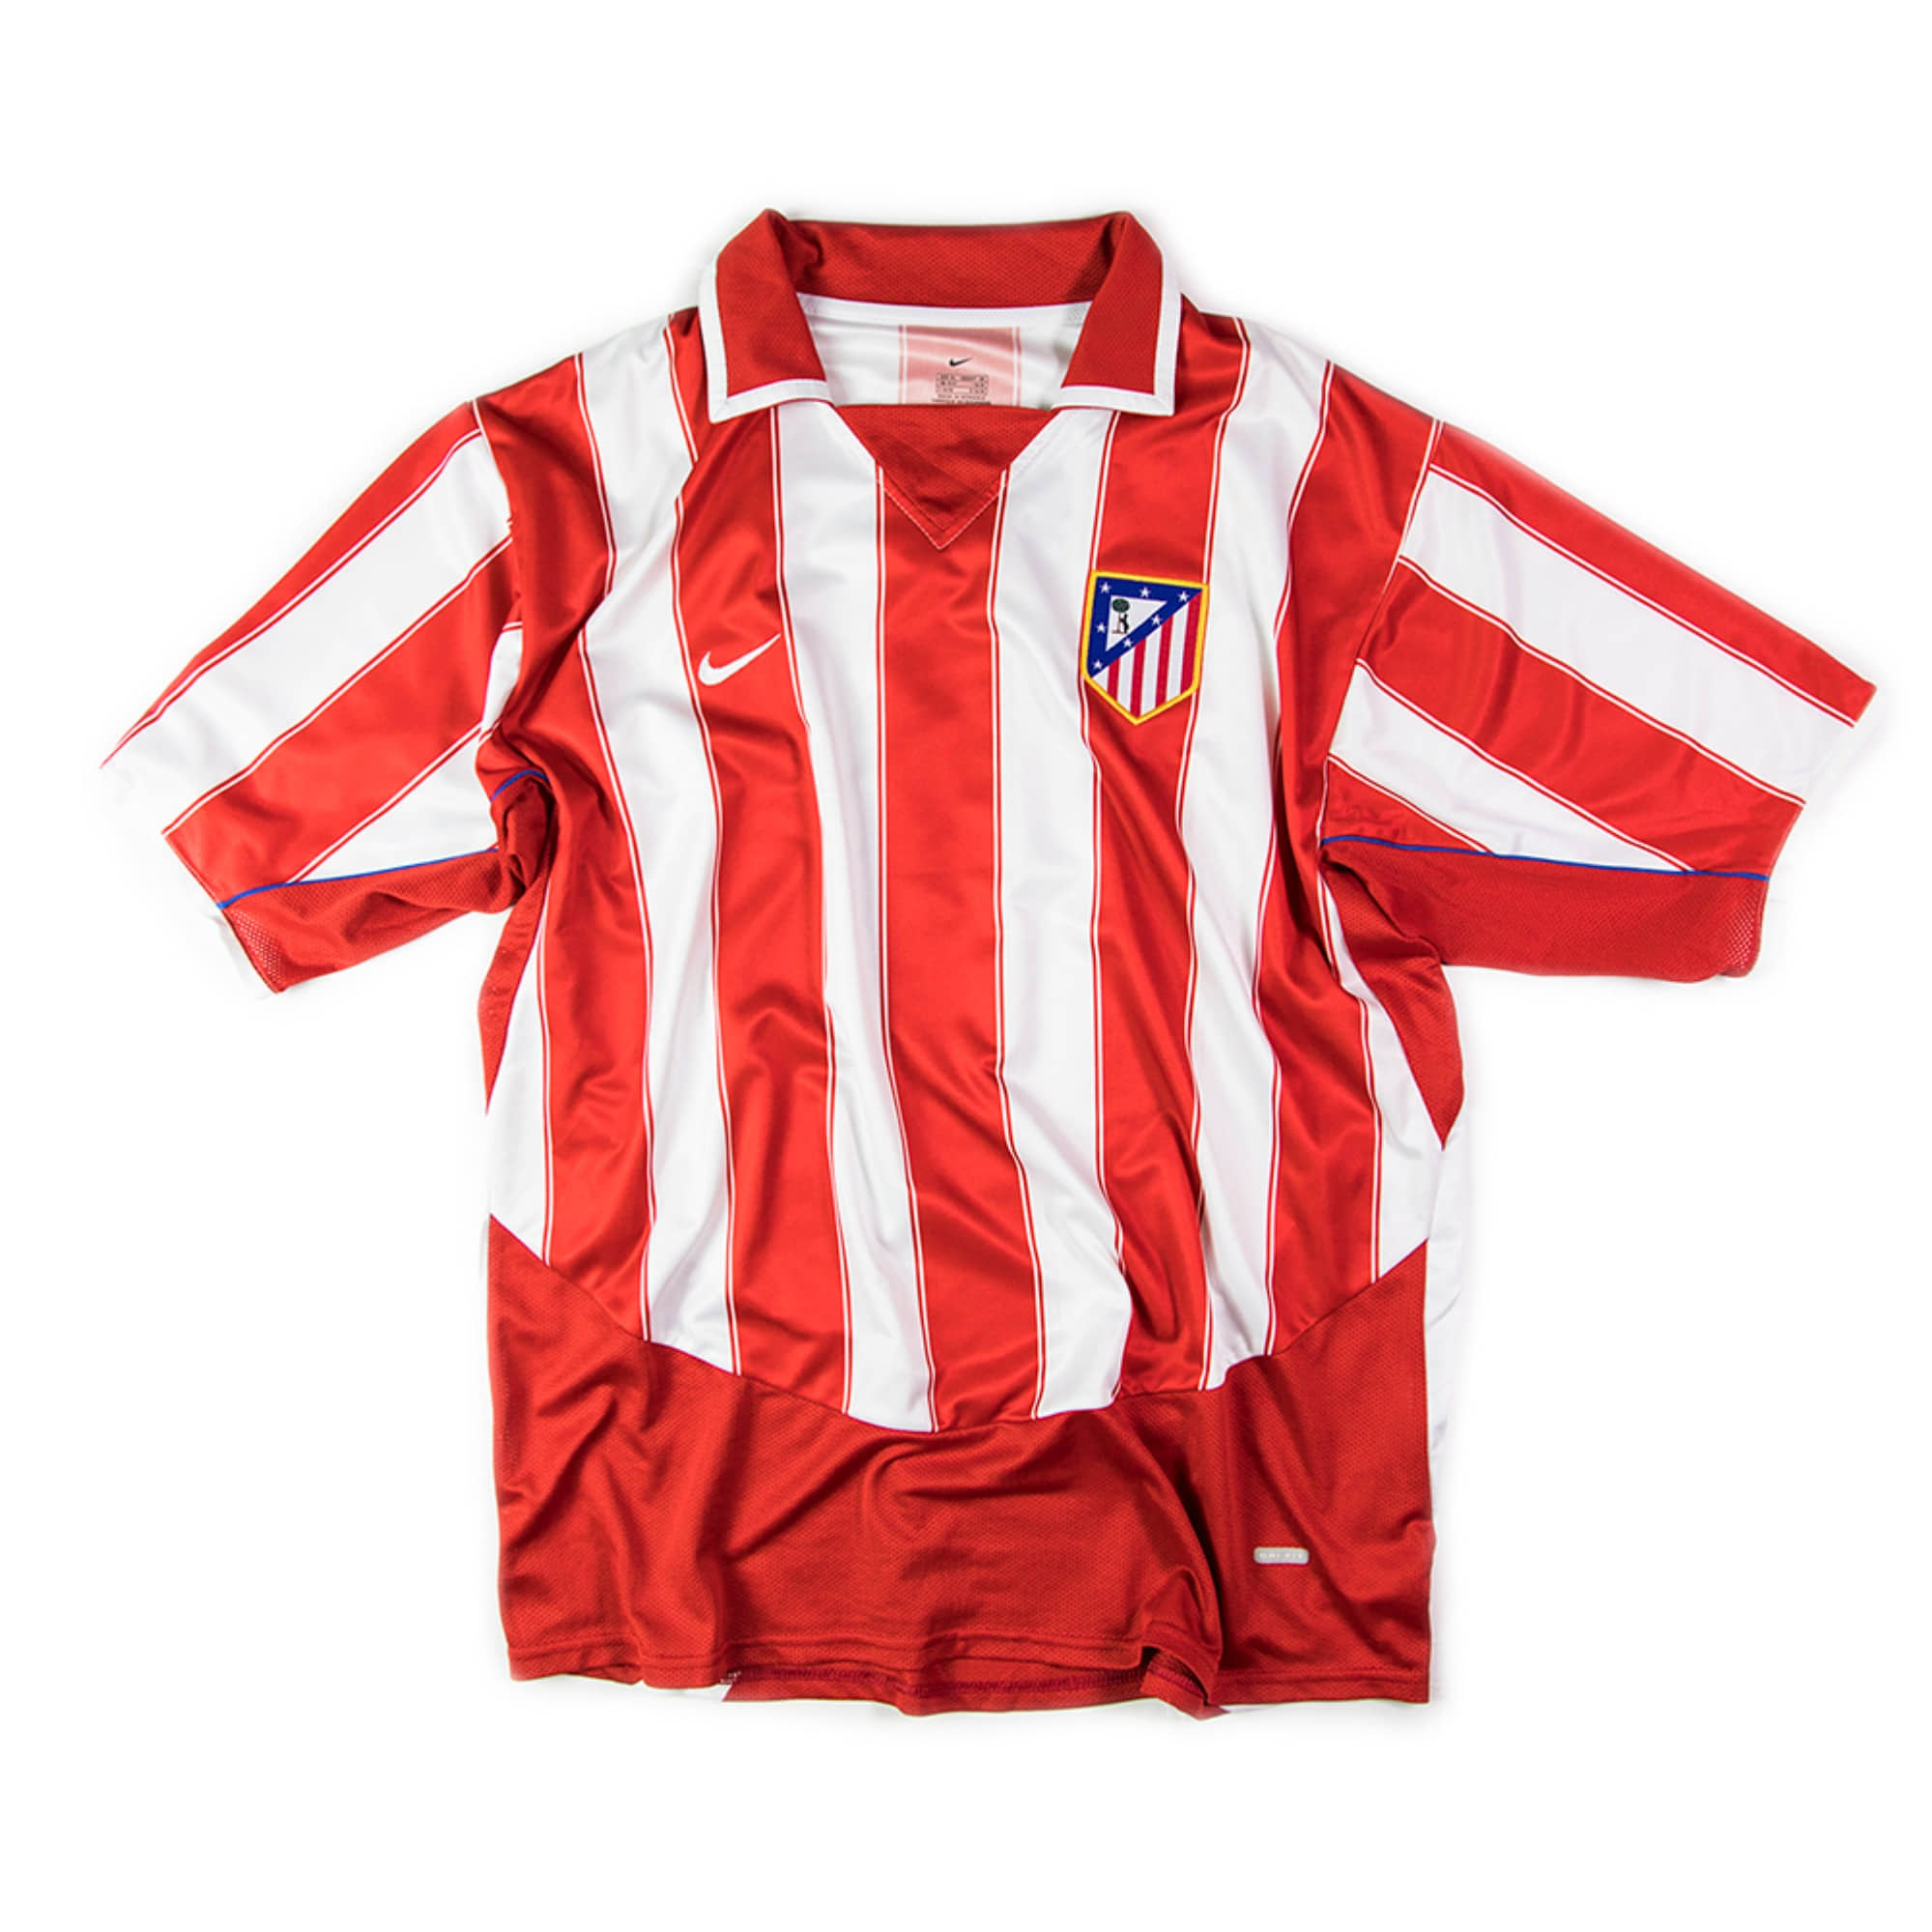 ATLETICO MADRID 2003-04 HOME S/S #9 TORRES